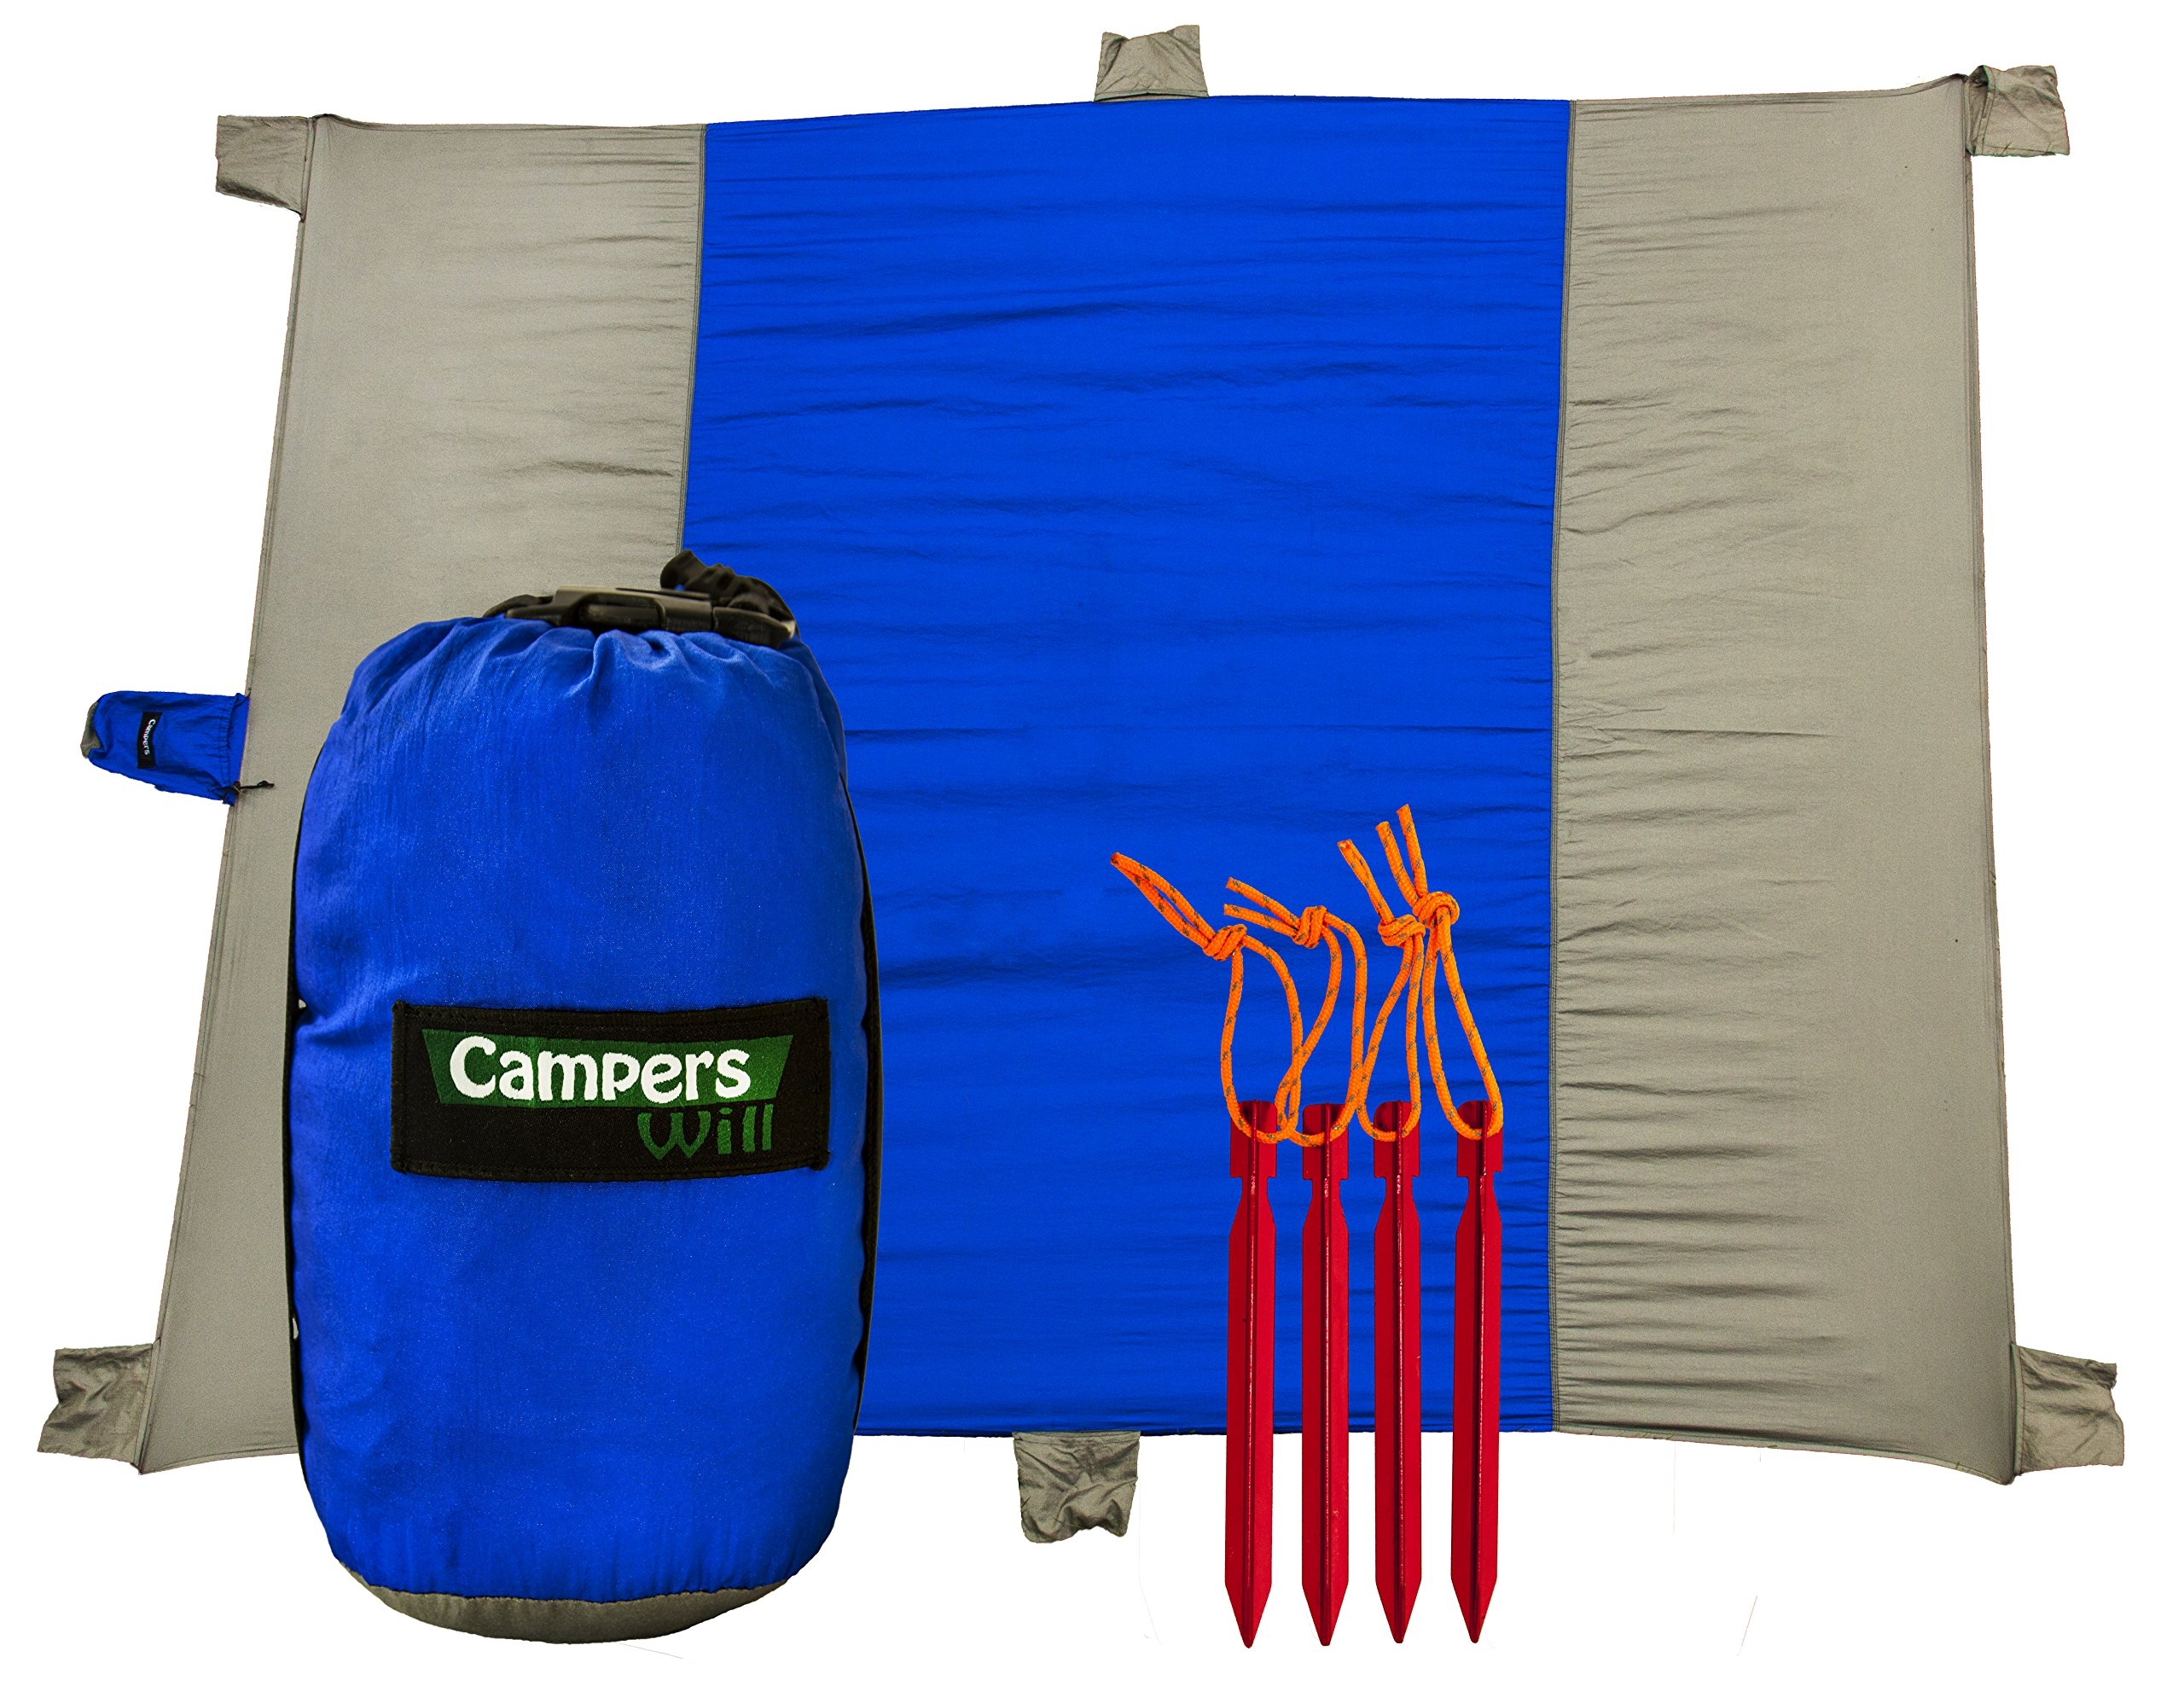 Compact Outdoor Camping Blanket and Beach Picnic Mat - Oversized 7 x 9 Ft, Quick Drying and Packable   Great Travel, Camp, Hike Blankets   Made of Premium Quality Nylon